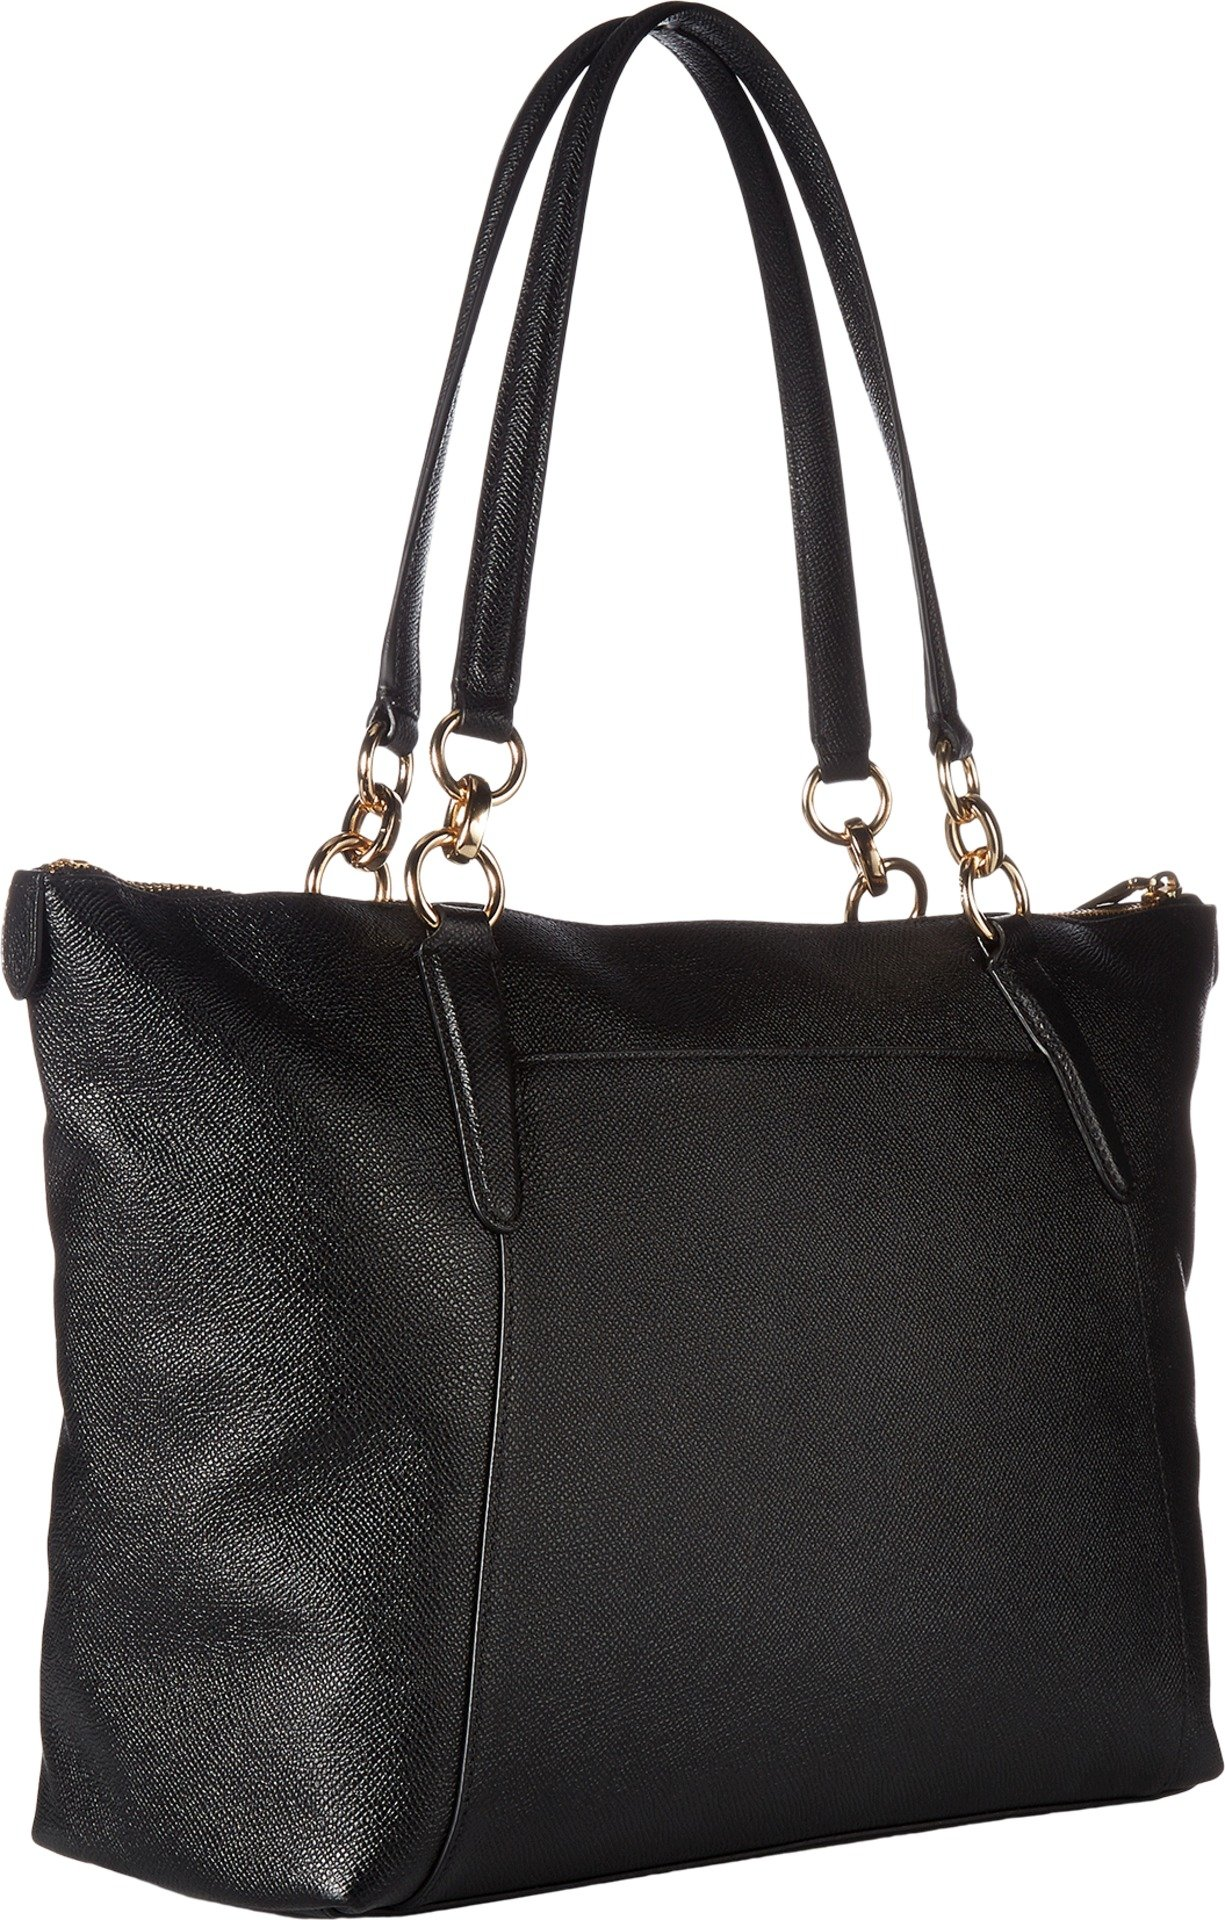 COACH Women's Crossgrain Ava Tote Im/Black One Size by Coach (Image #2)